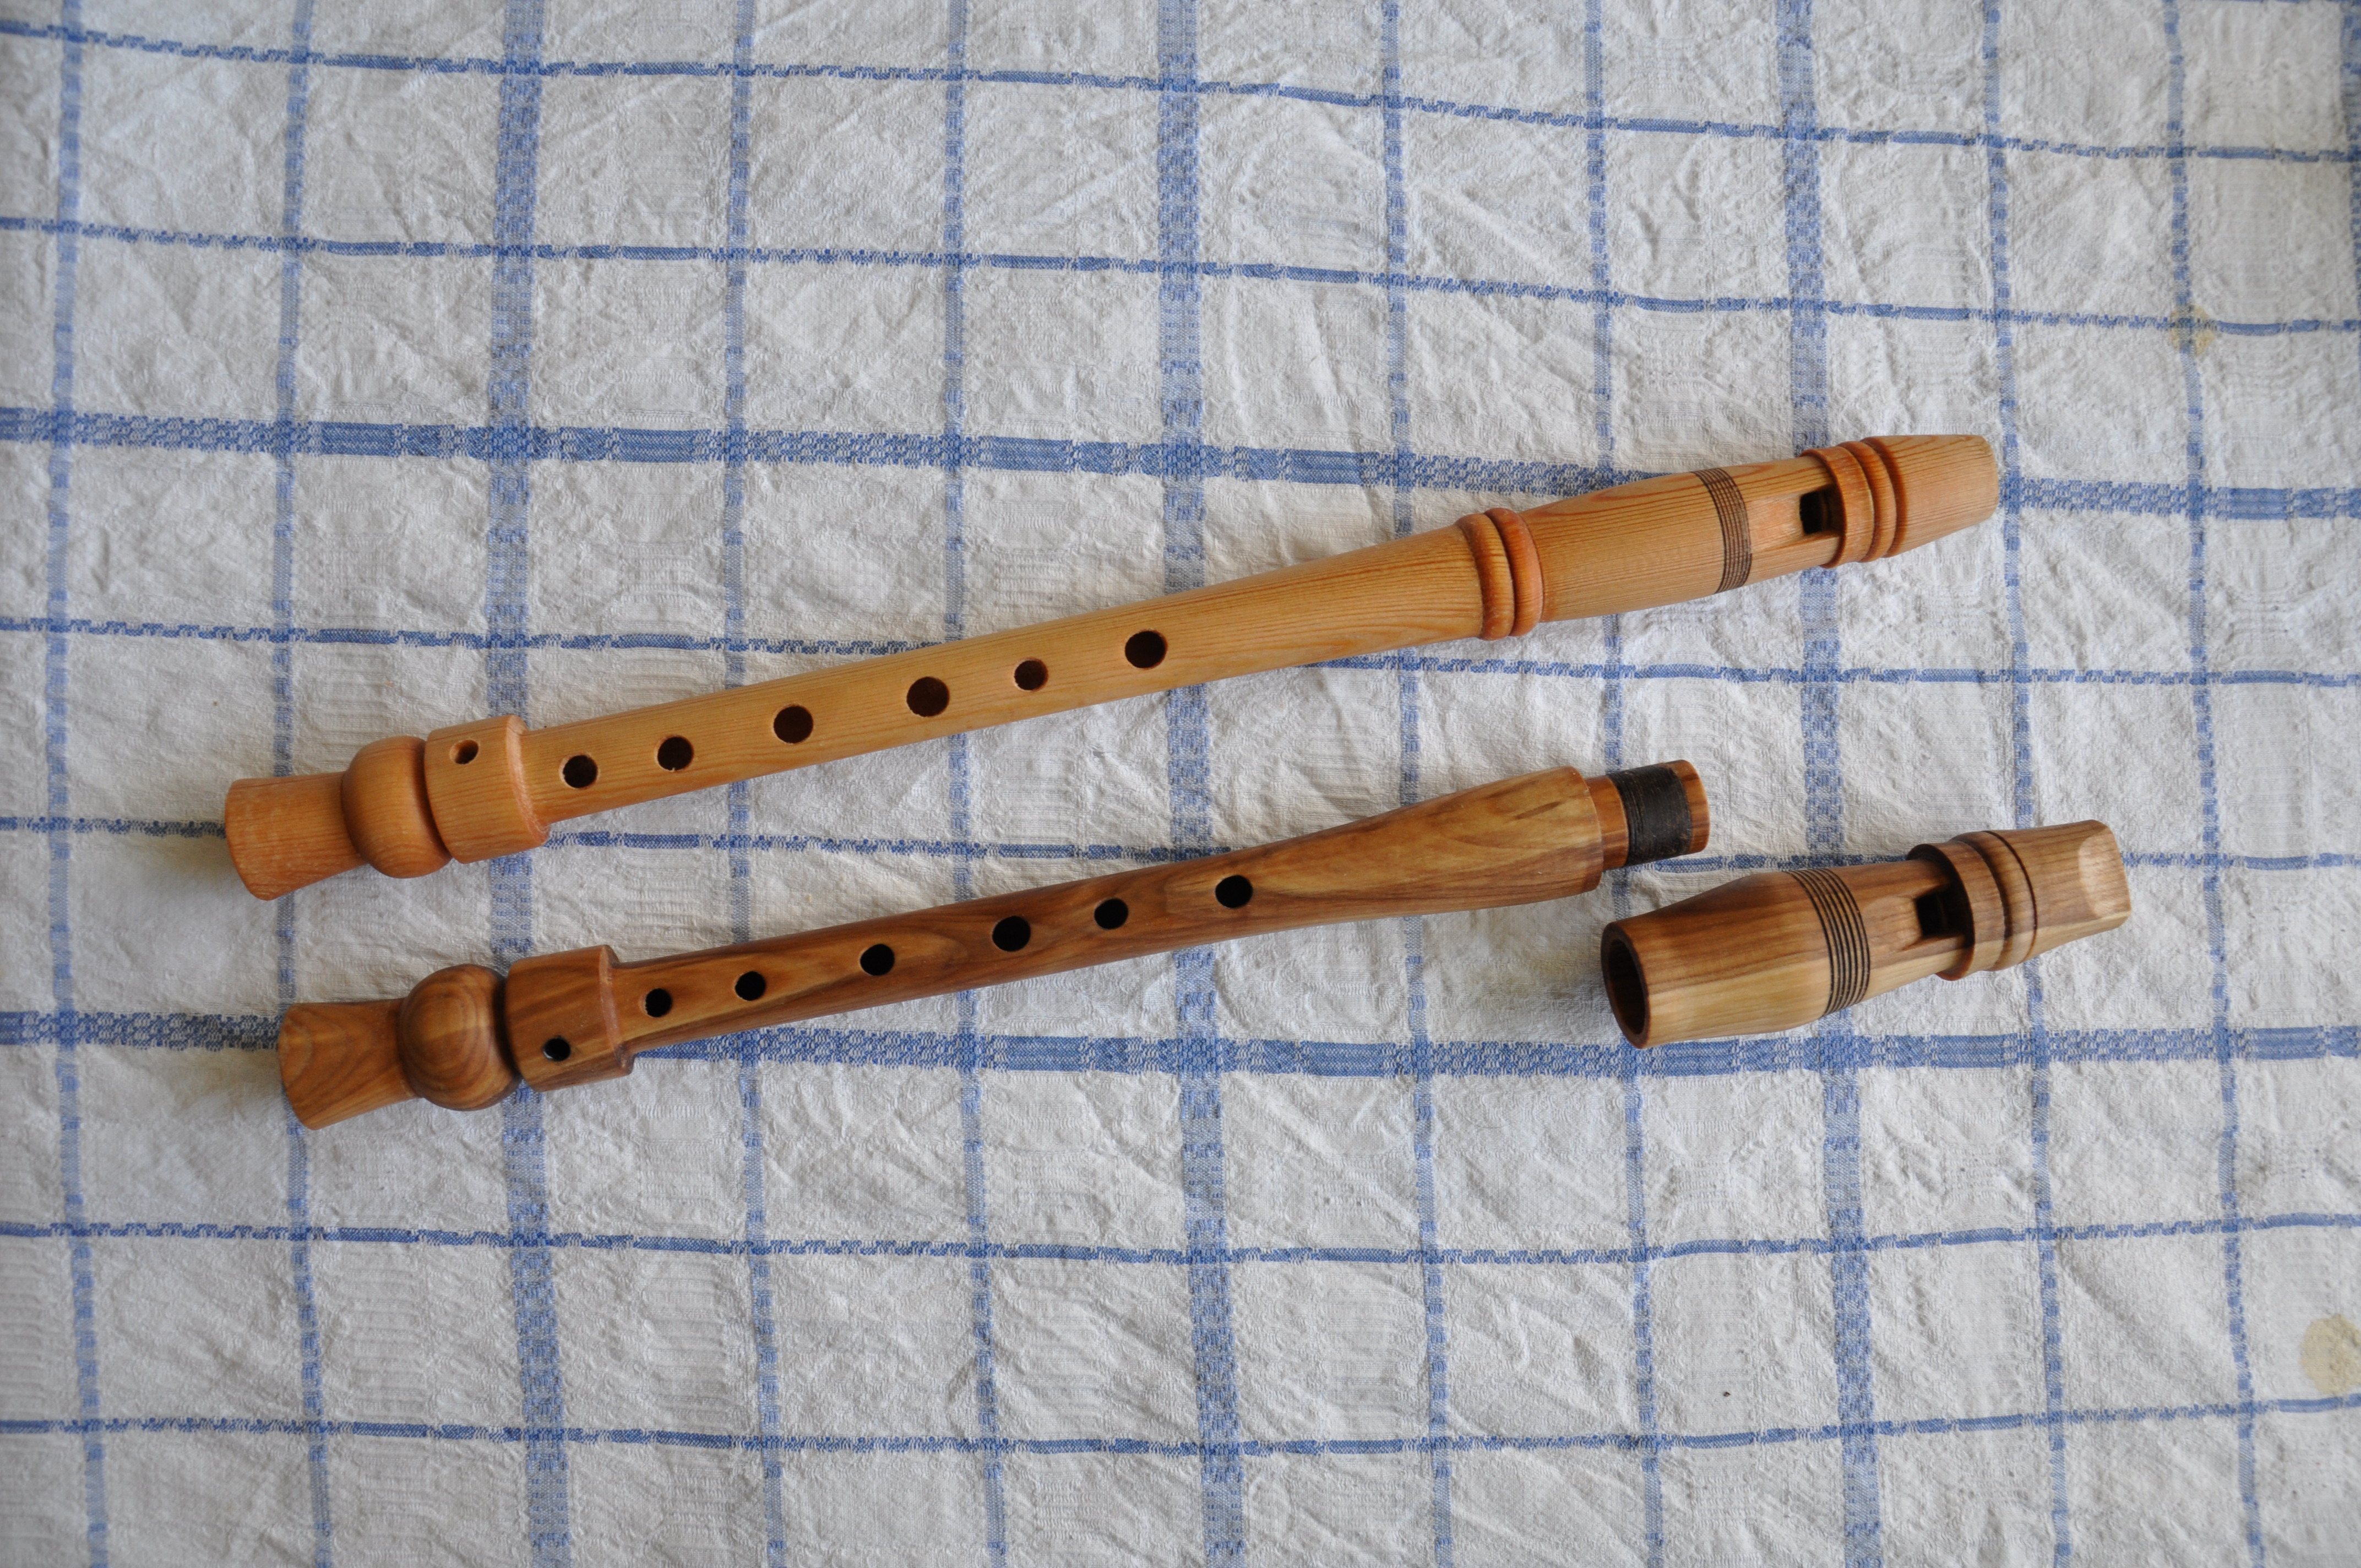 Research paper on the flute